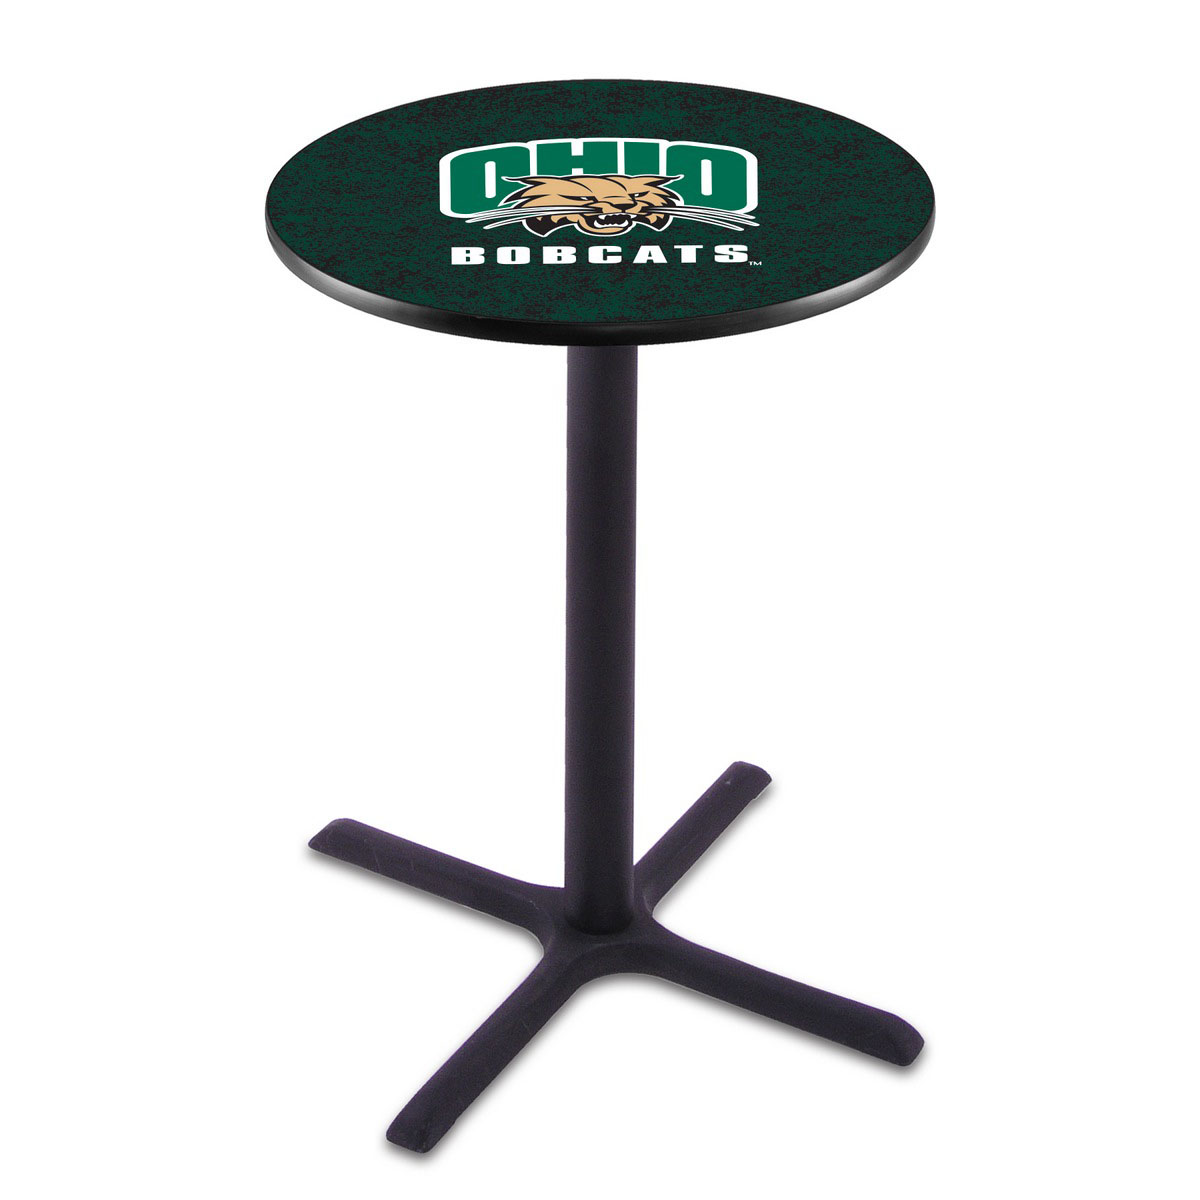 Exquisite Ohio University Wrinkle Pub Table Product Photo